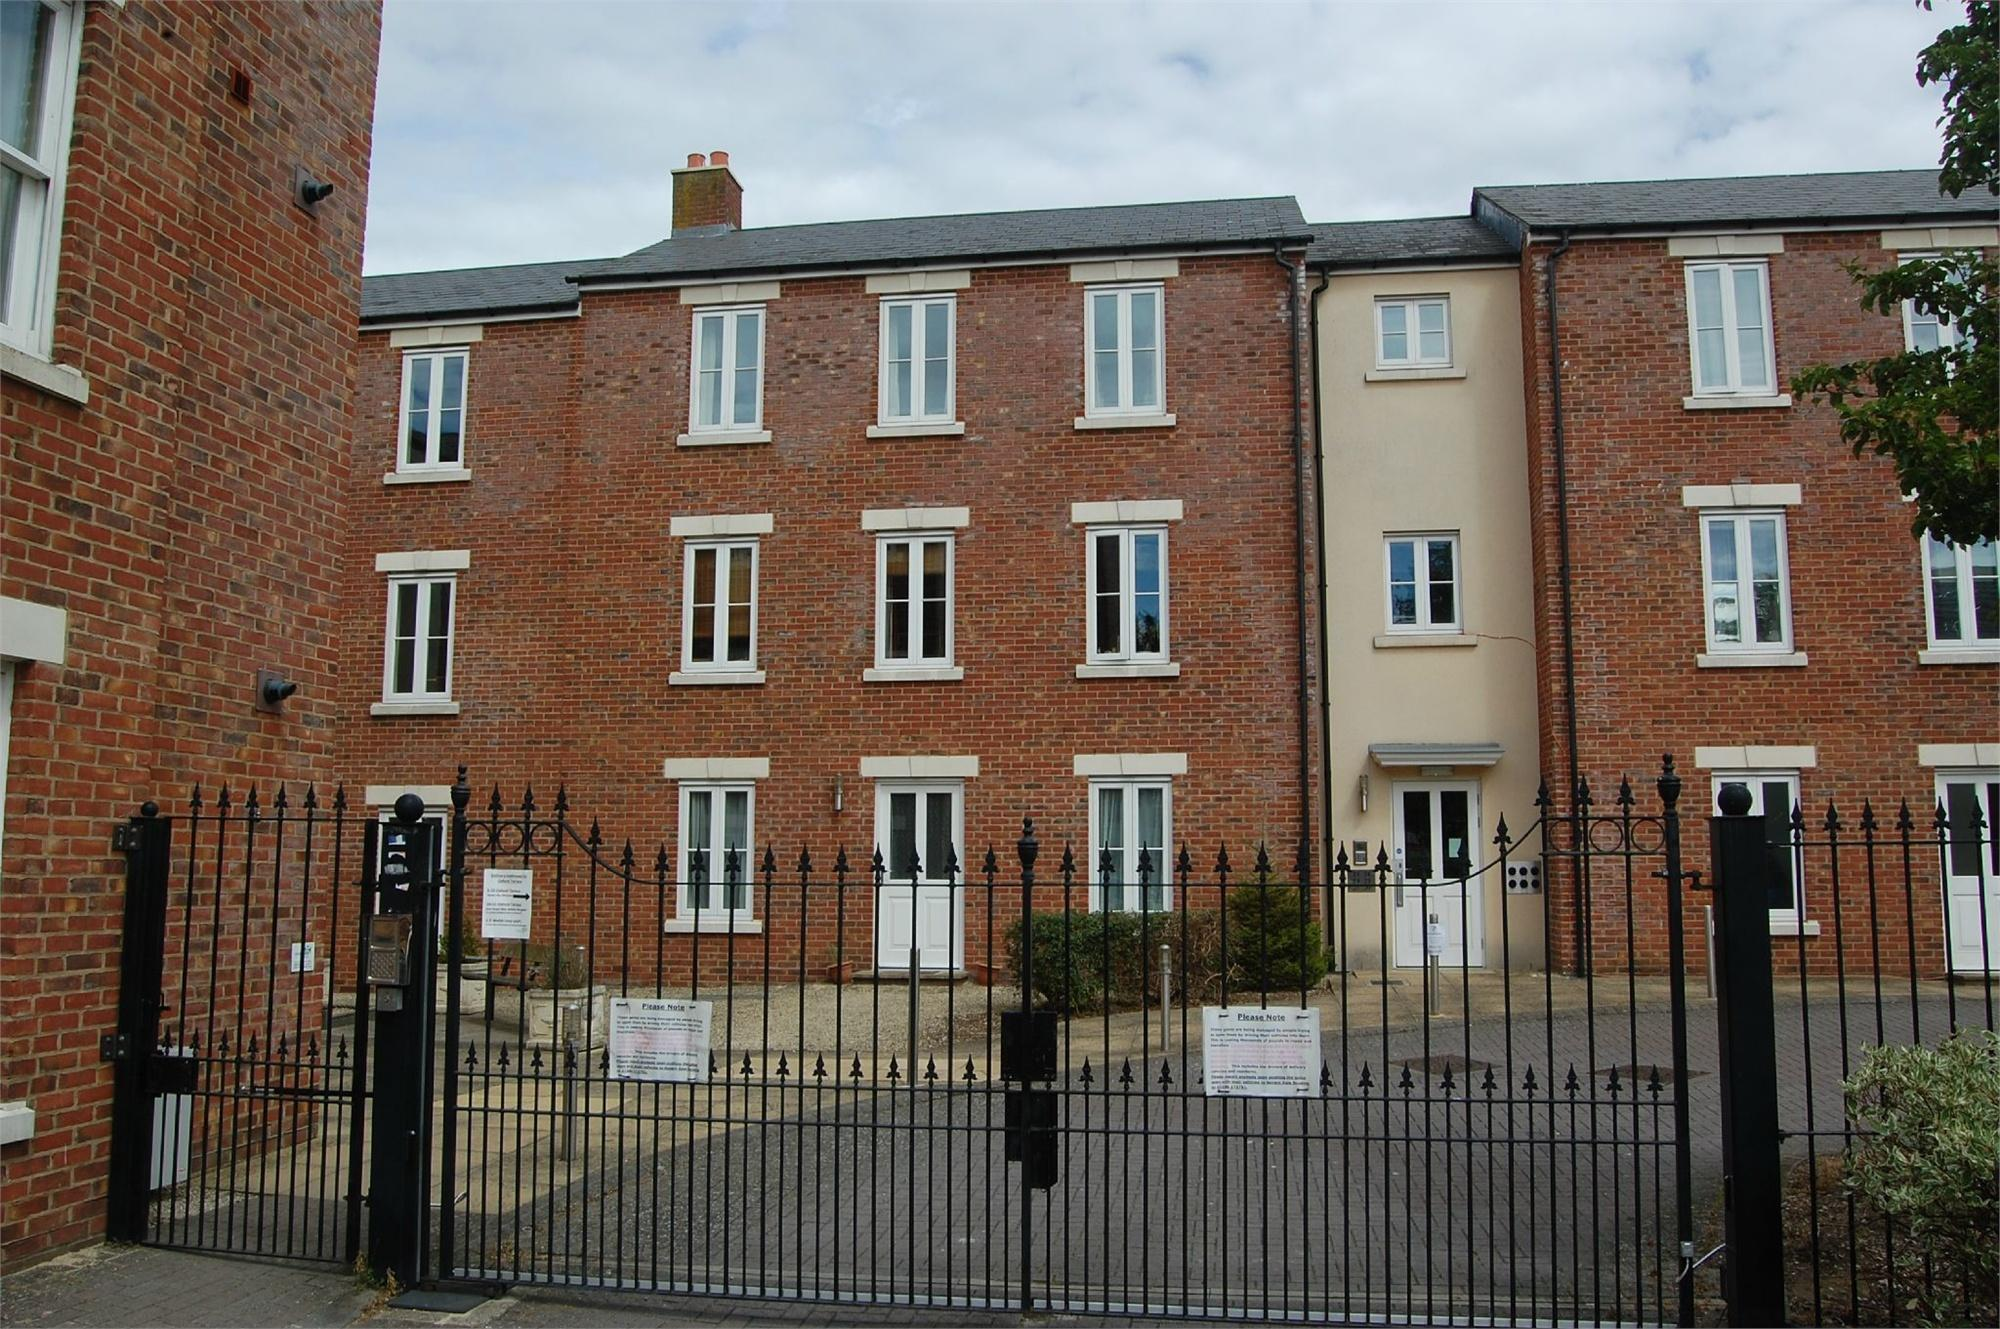 Cj hole gloucester 2 bedroom flat for sale in 30 oxford for Oxford terrace 2